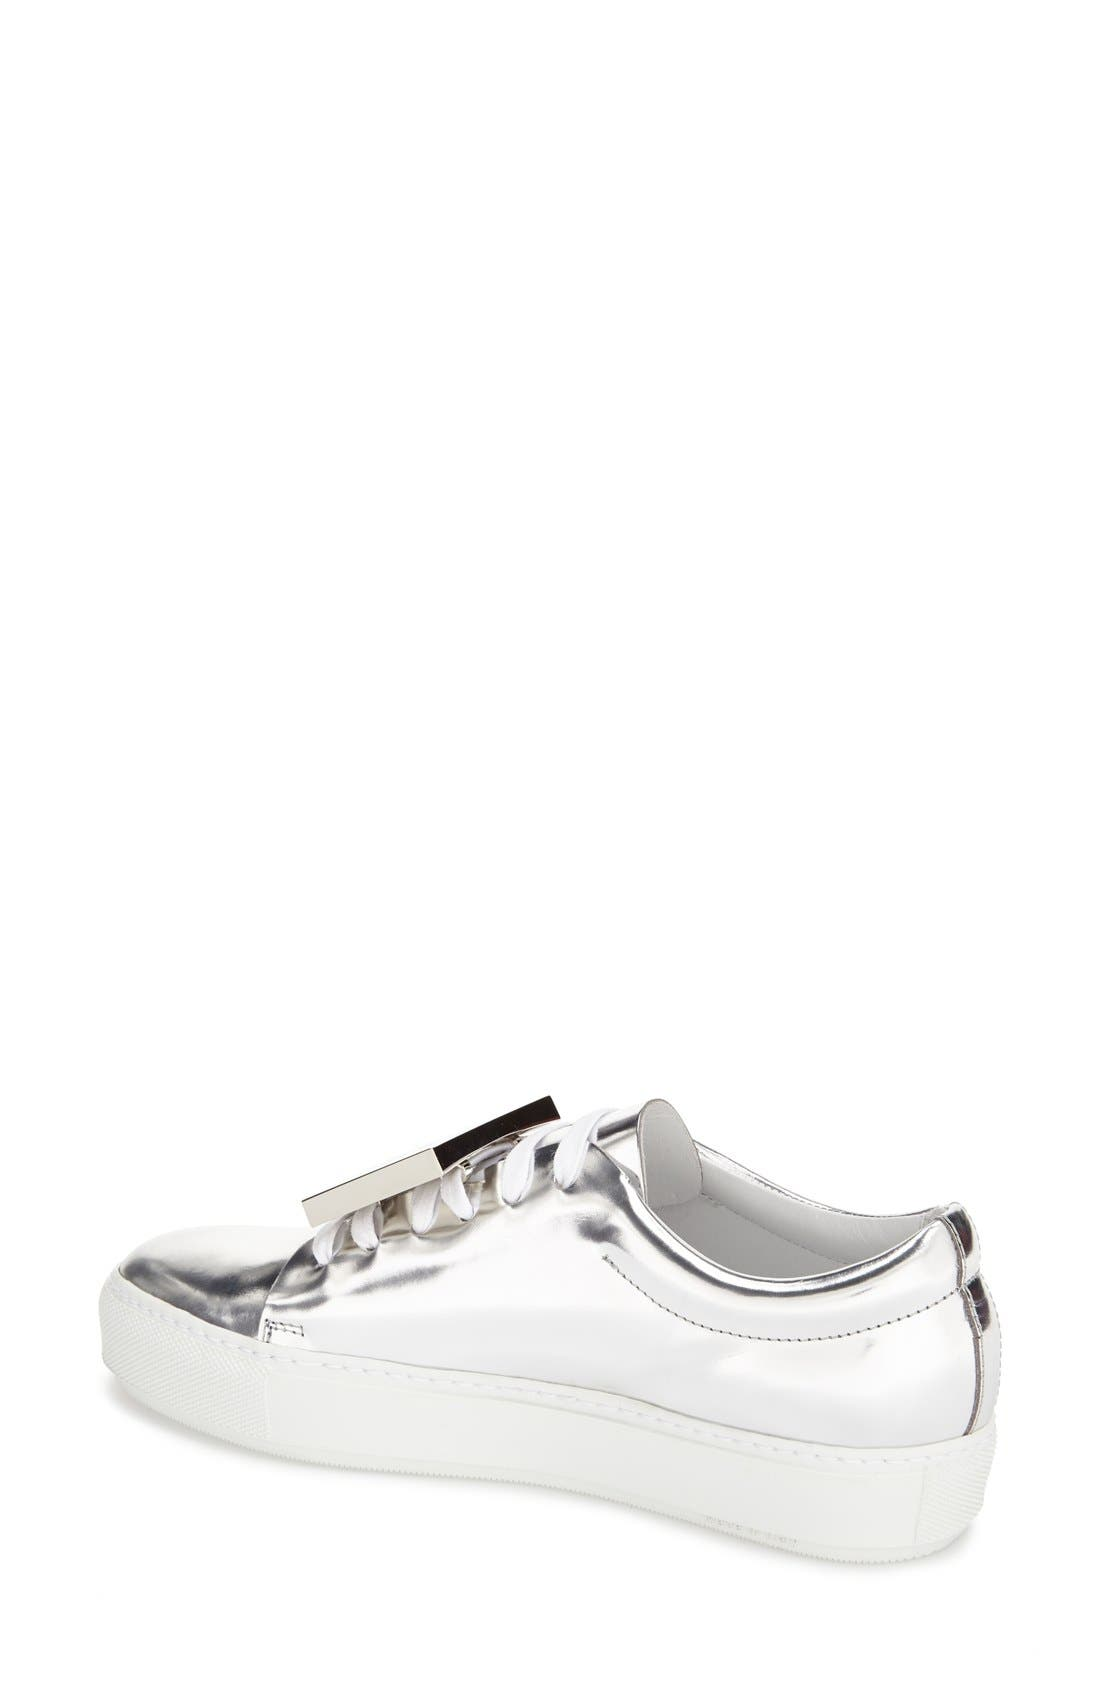 Alternate Image 2  - ACNE Studios 'Adriana' Silver Metallic Sneaker (Women)